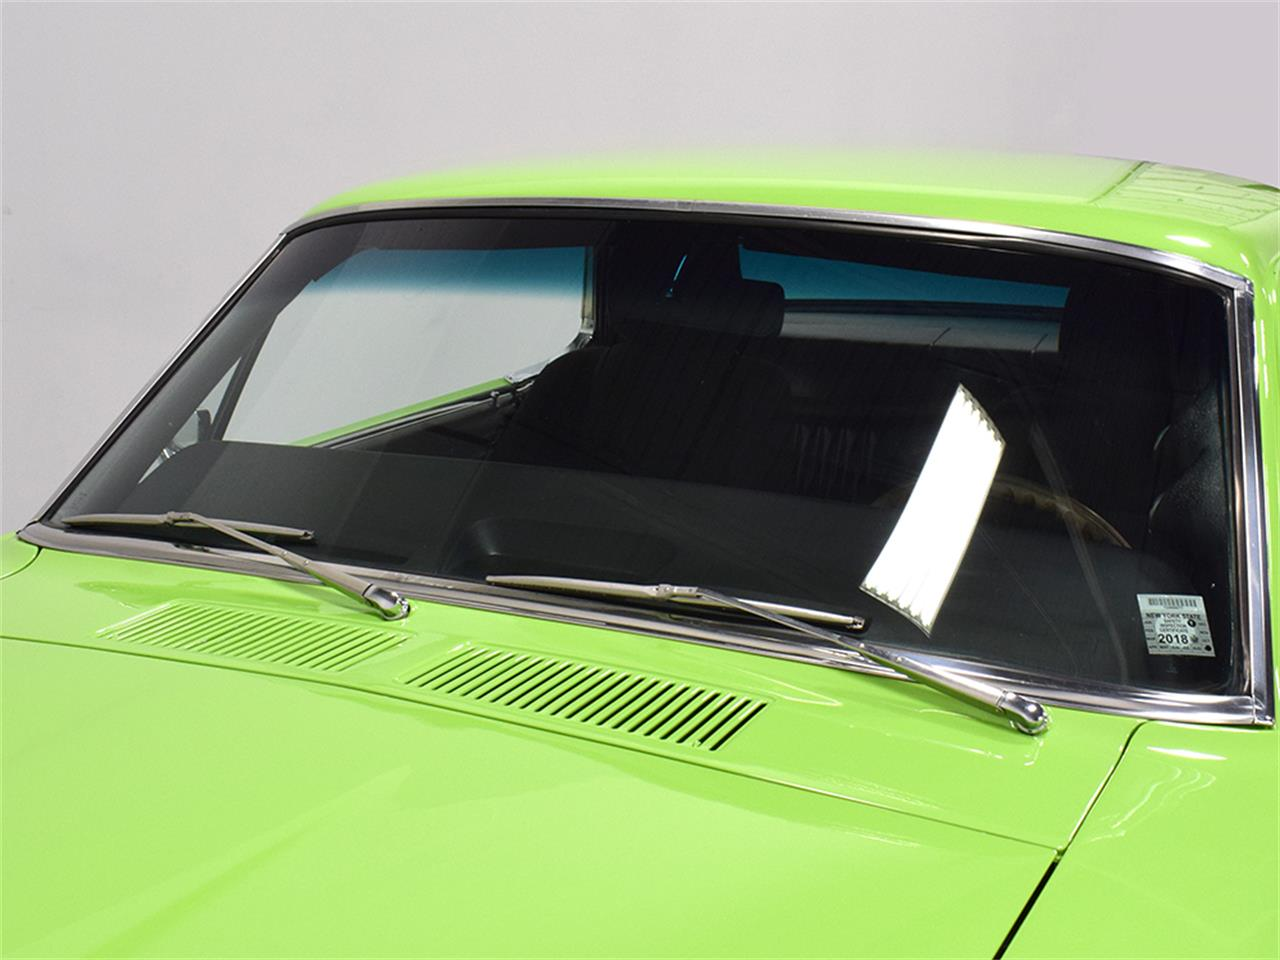 Large Picture of '67 Cougar located in Macedonia Ohio Offered by Harwood Motors, LTD. - MH5X